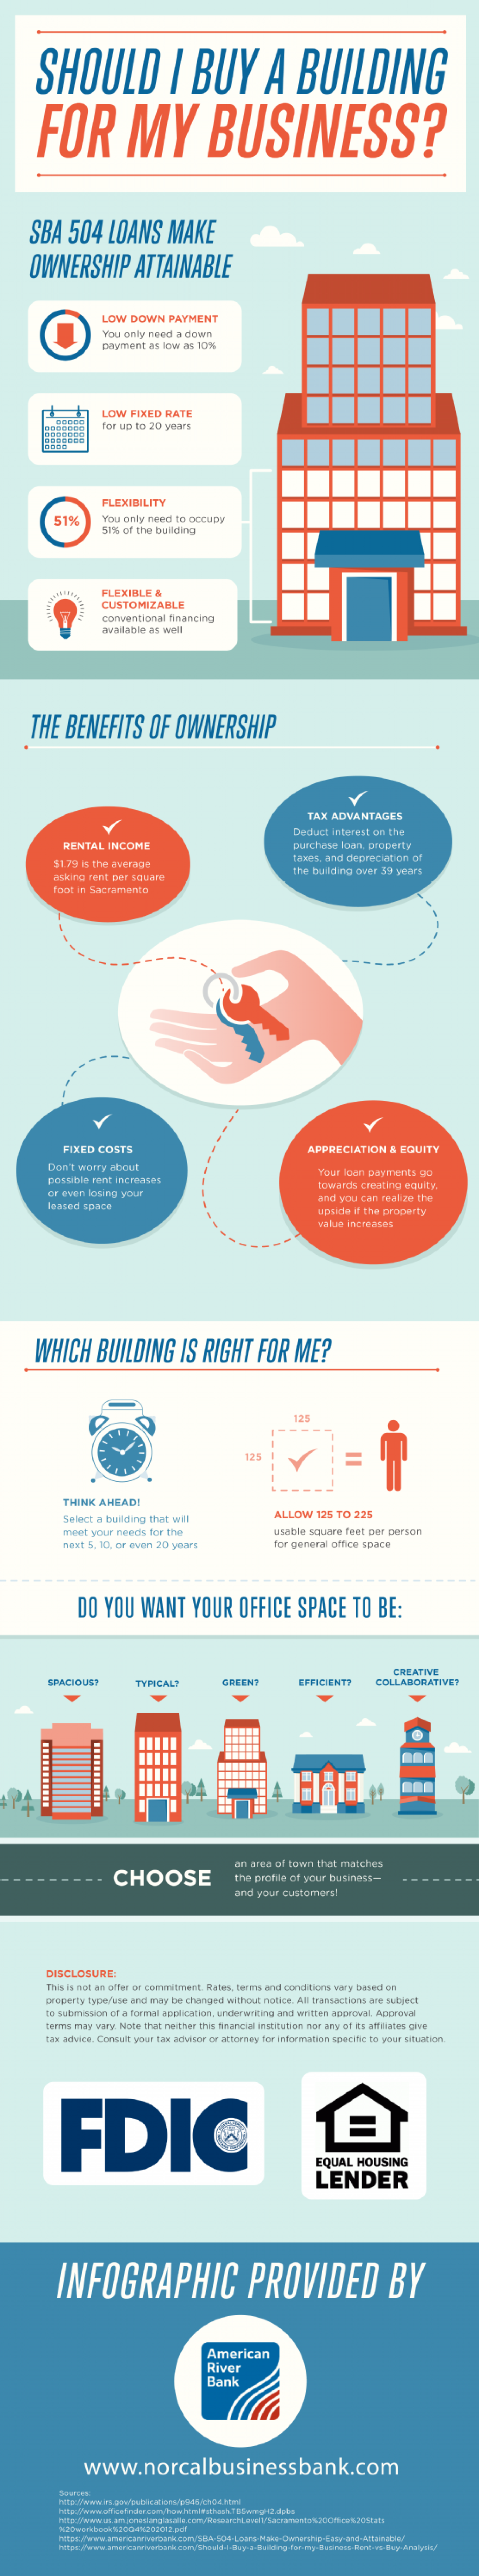 Should I Buy a Building for My Business? Infographic